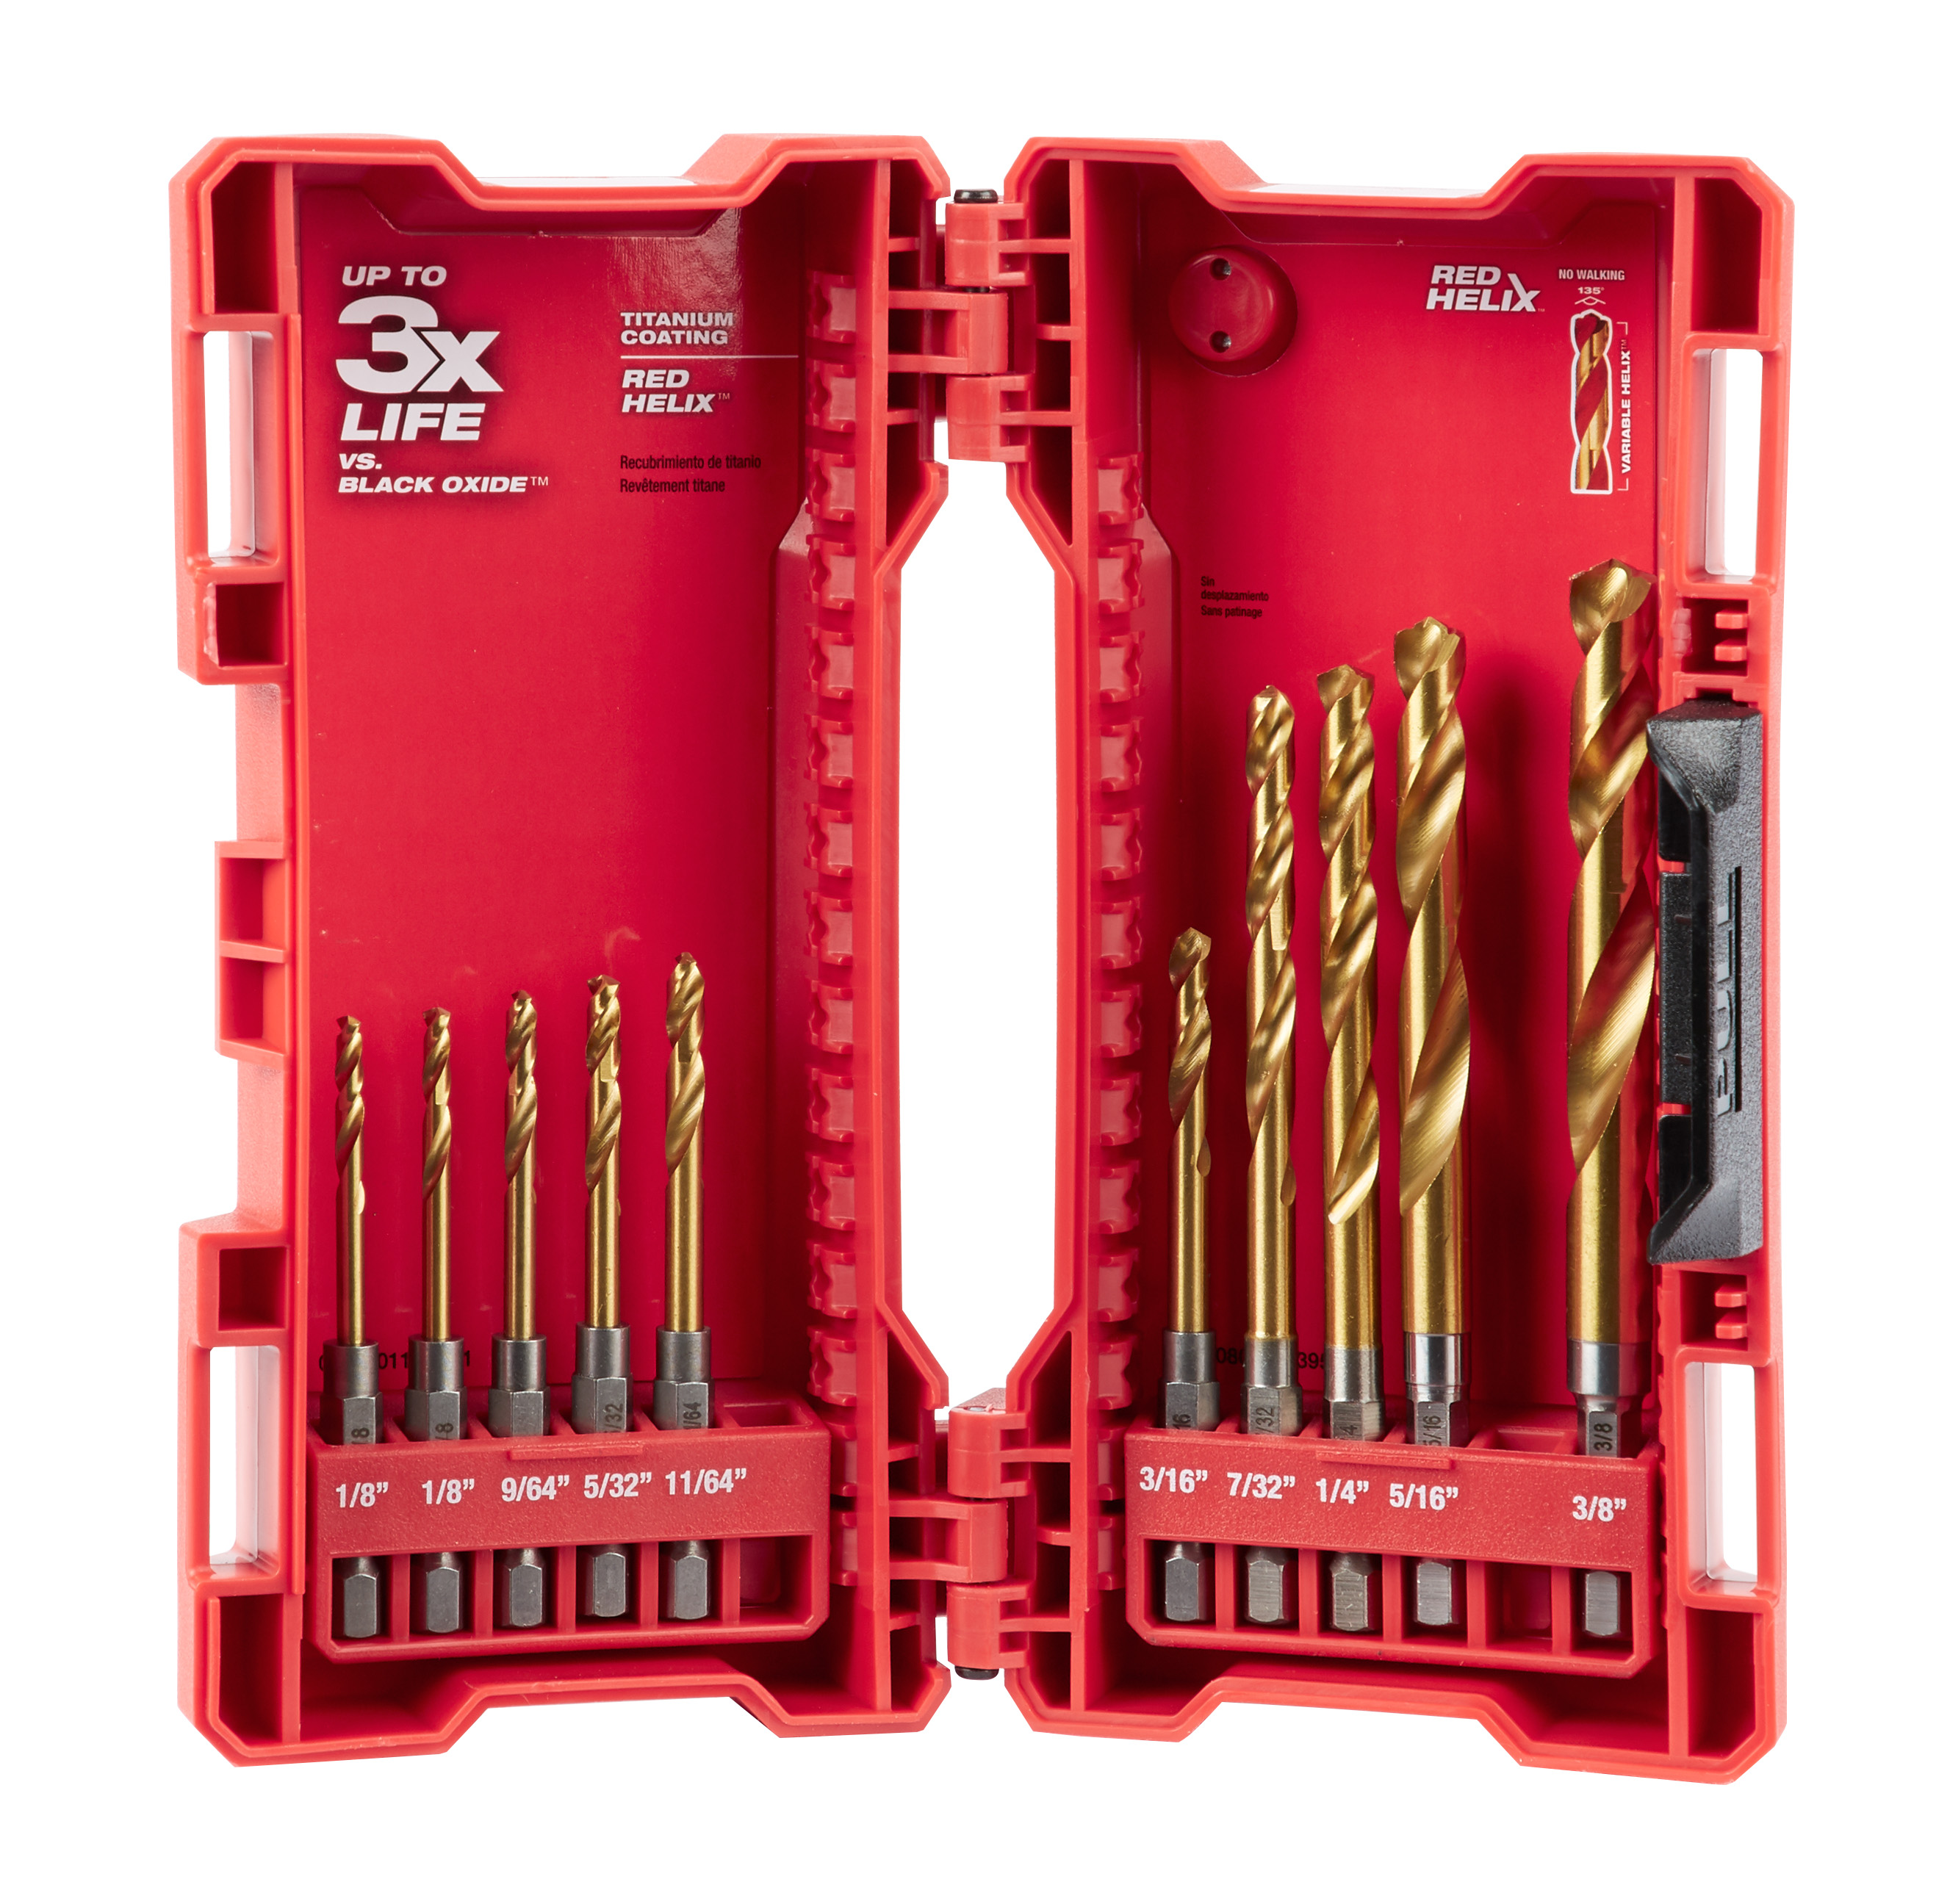 Milwaukee® SHOCKWAVE™ RED HELIX™ 48-89-4633 Drill Bit Set, 1-9/64 in Min Drill Bit, 2-1/8 in Max Drill Bit, 135 deg Drill Point Angle, 10 Pieces, Titanium Coated